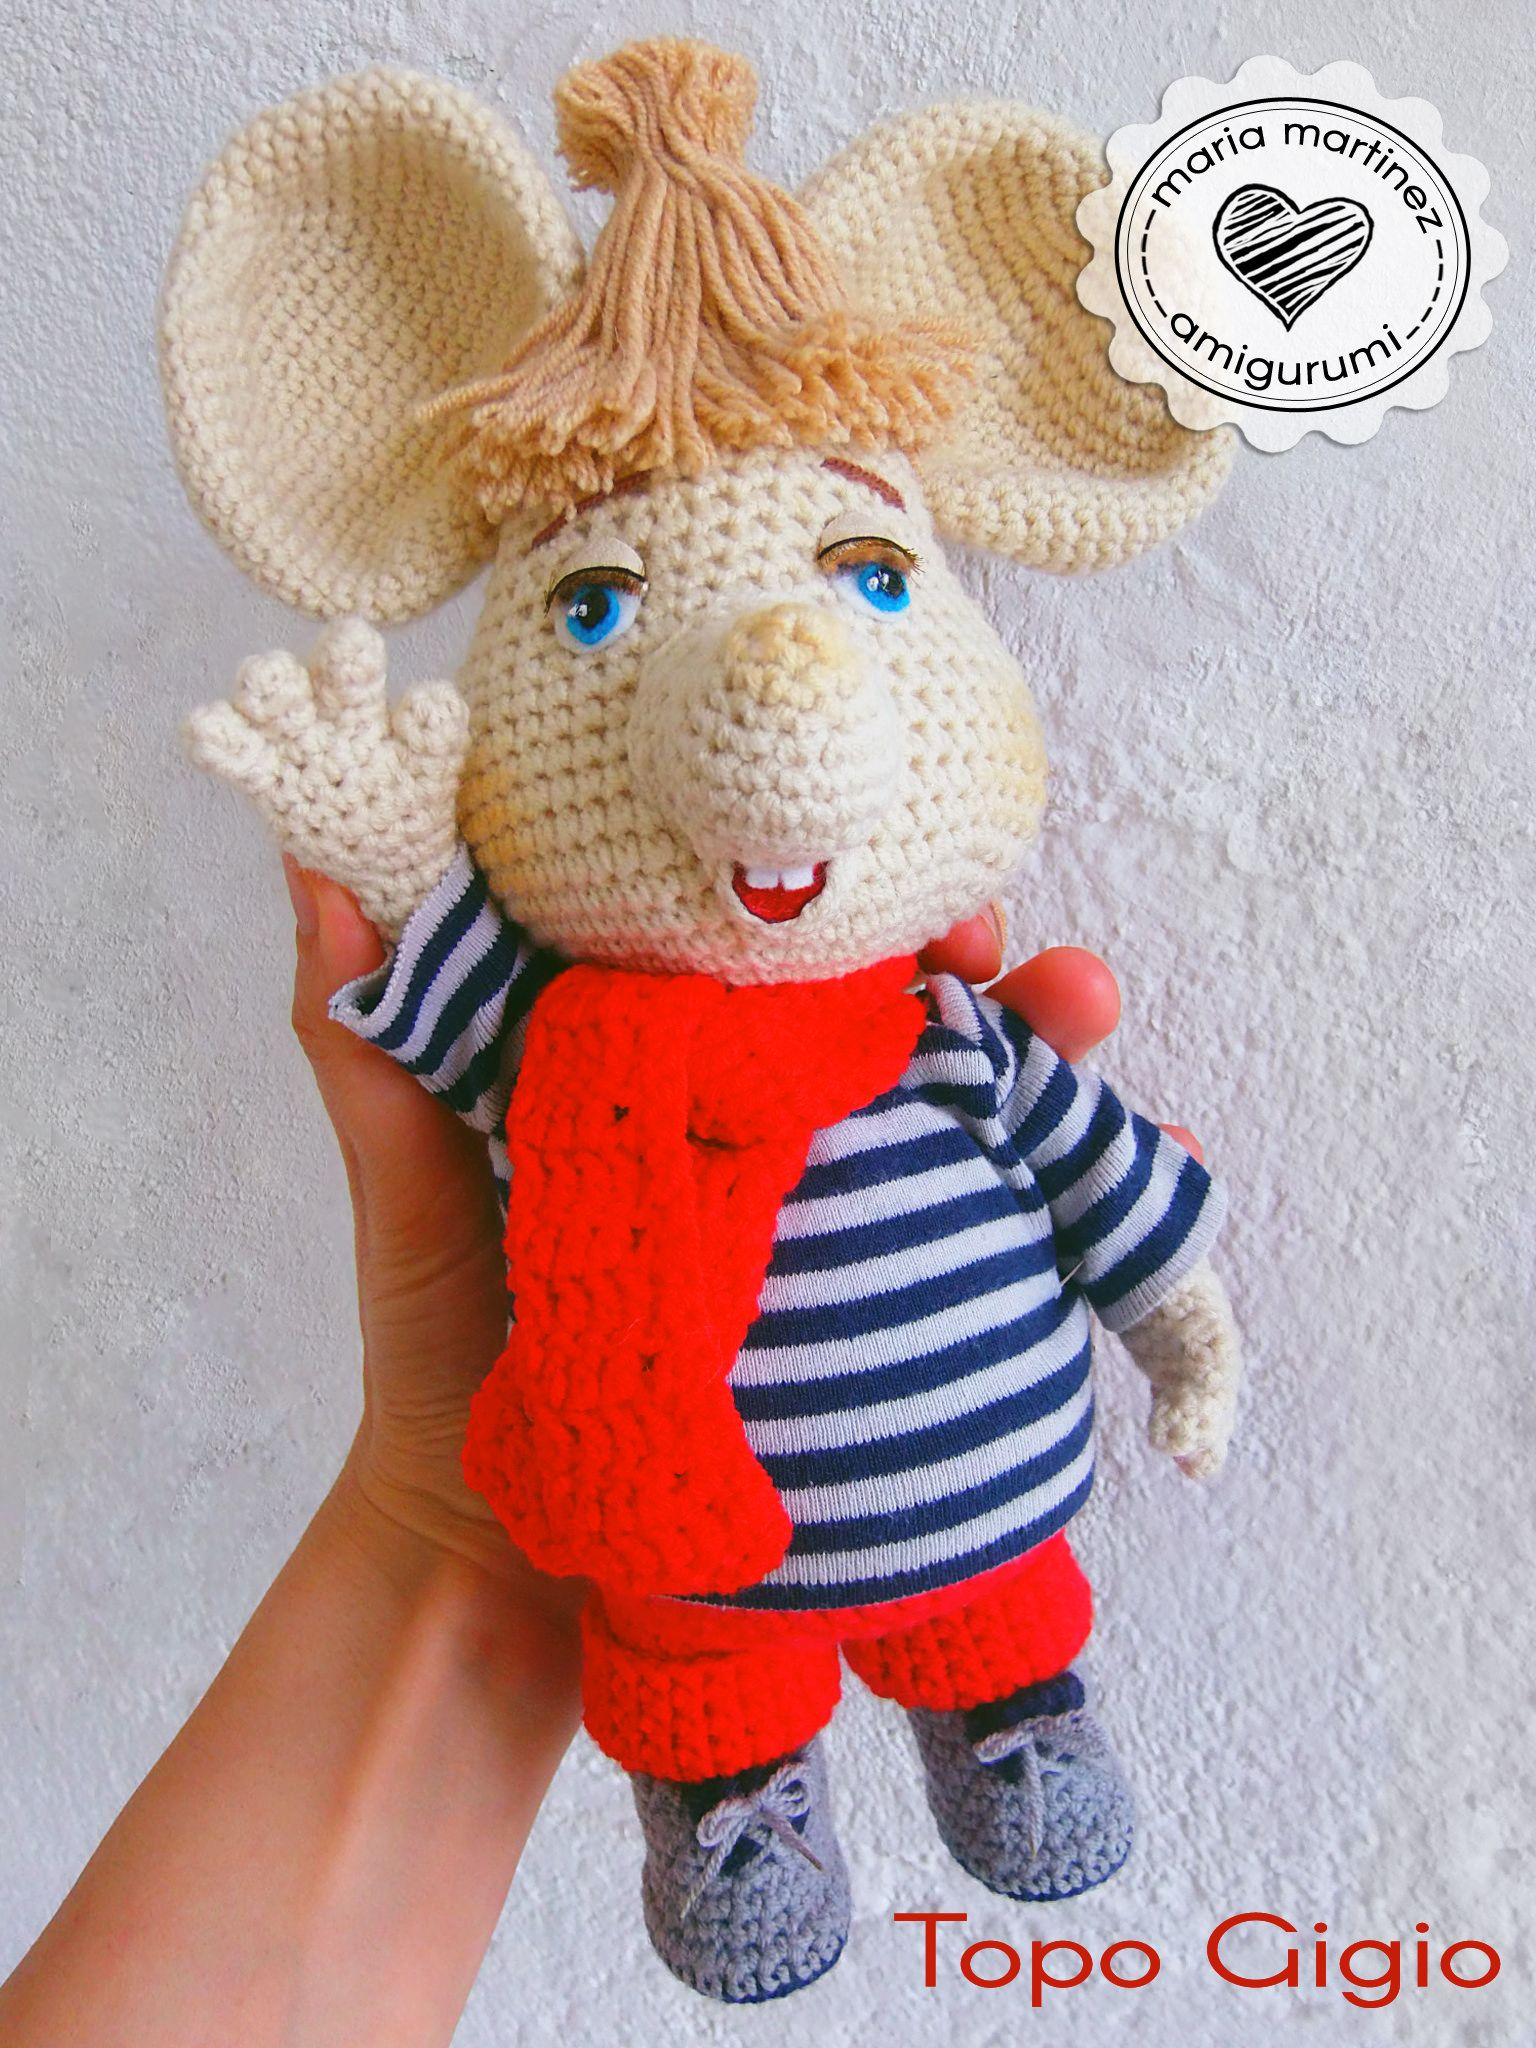 Topo gigio crochet maria martinez amigurumi amigurumi crochet topo gigio crochet maria martinez amigurumi crochet teddycrochet mousecrocheted toyscrochet dollscrocheting patternscrochet bankloansurffo Choice Image